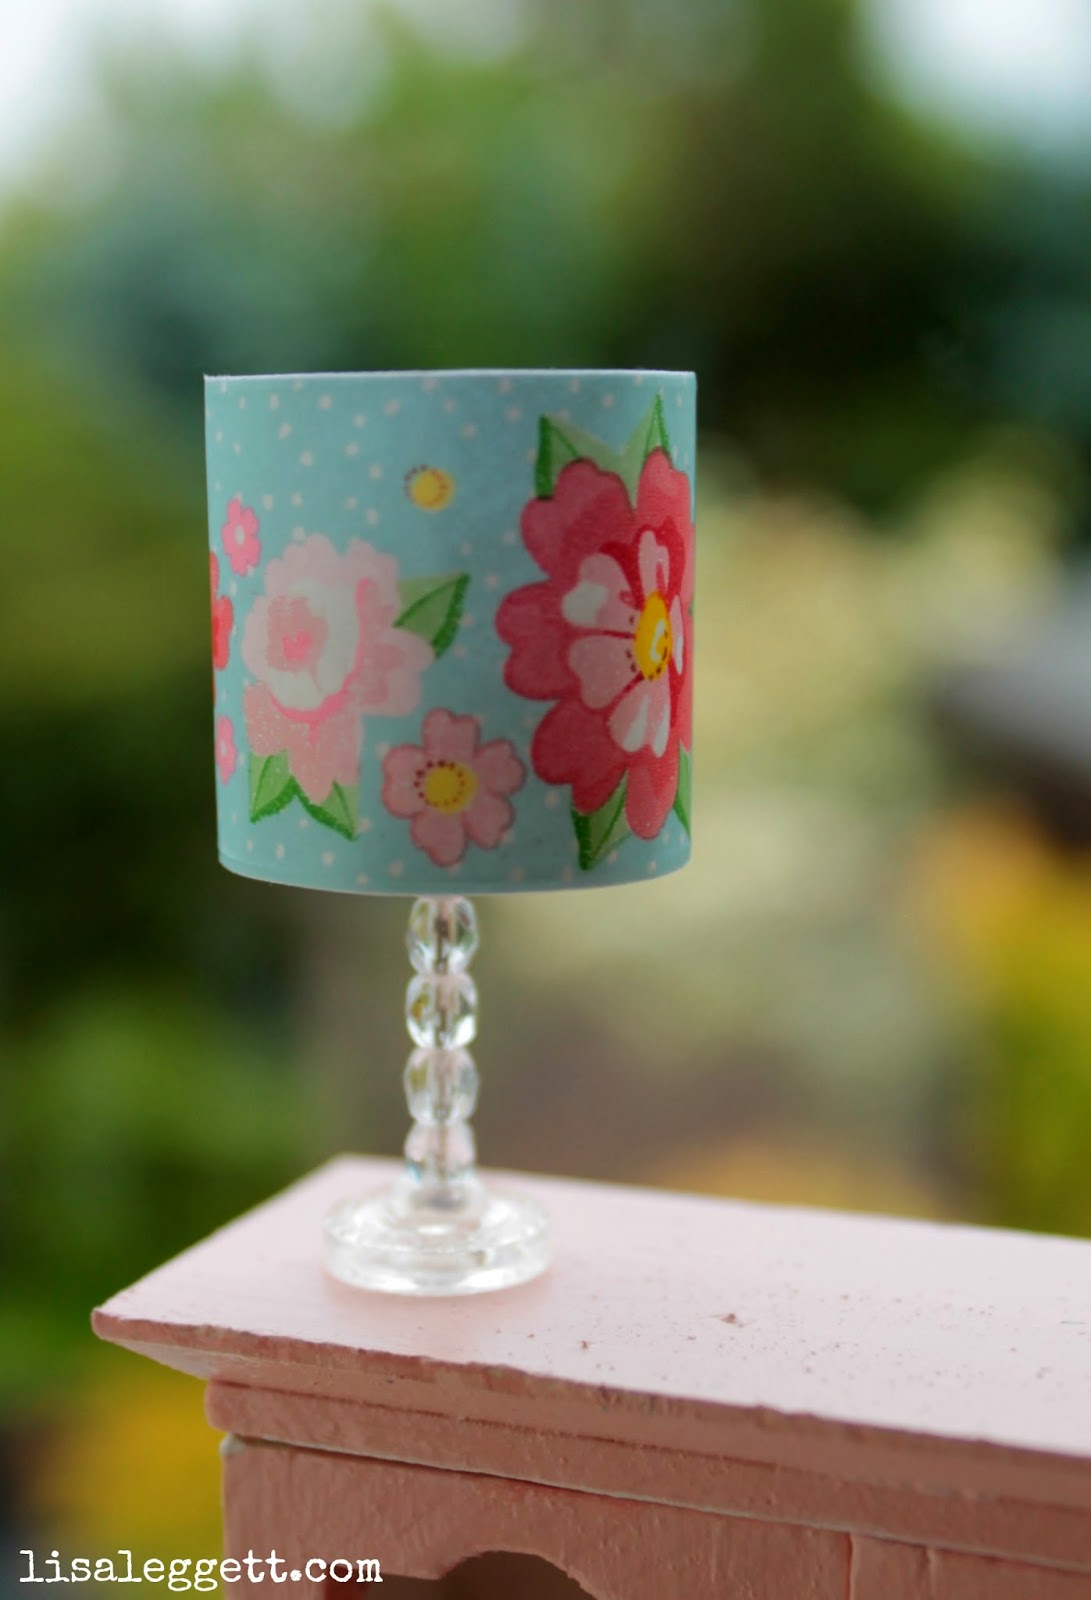 Miniature Lamp by Lisa Leggett